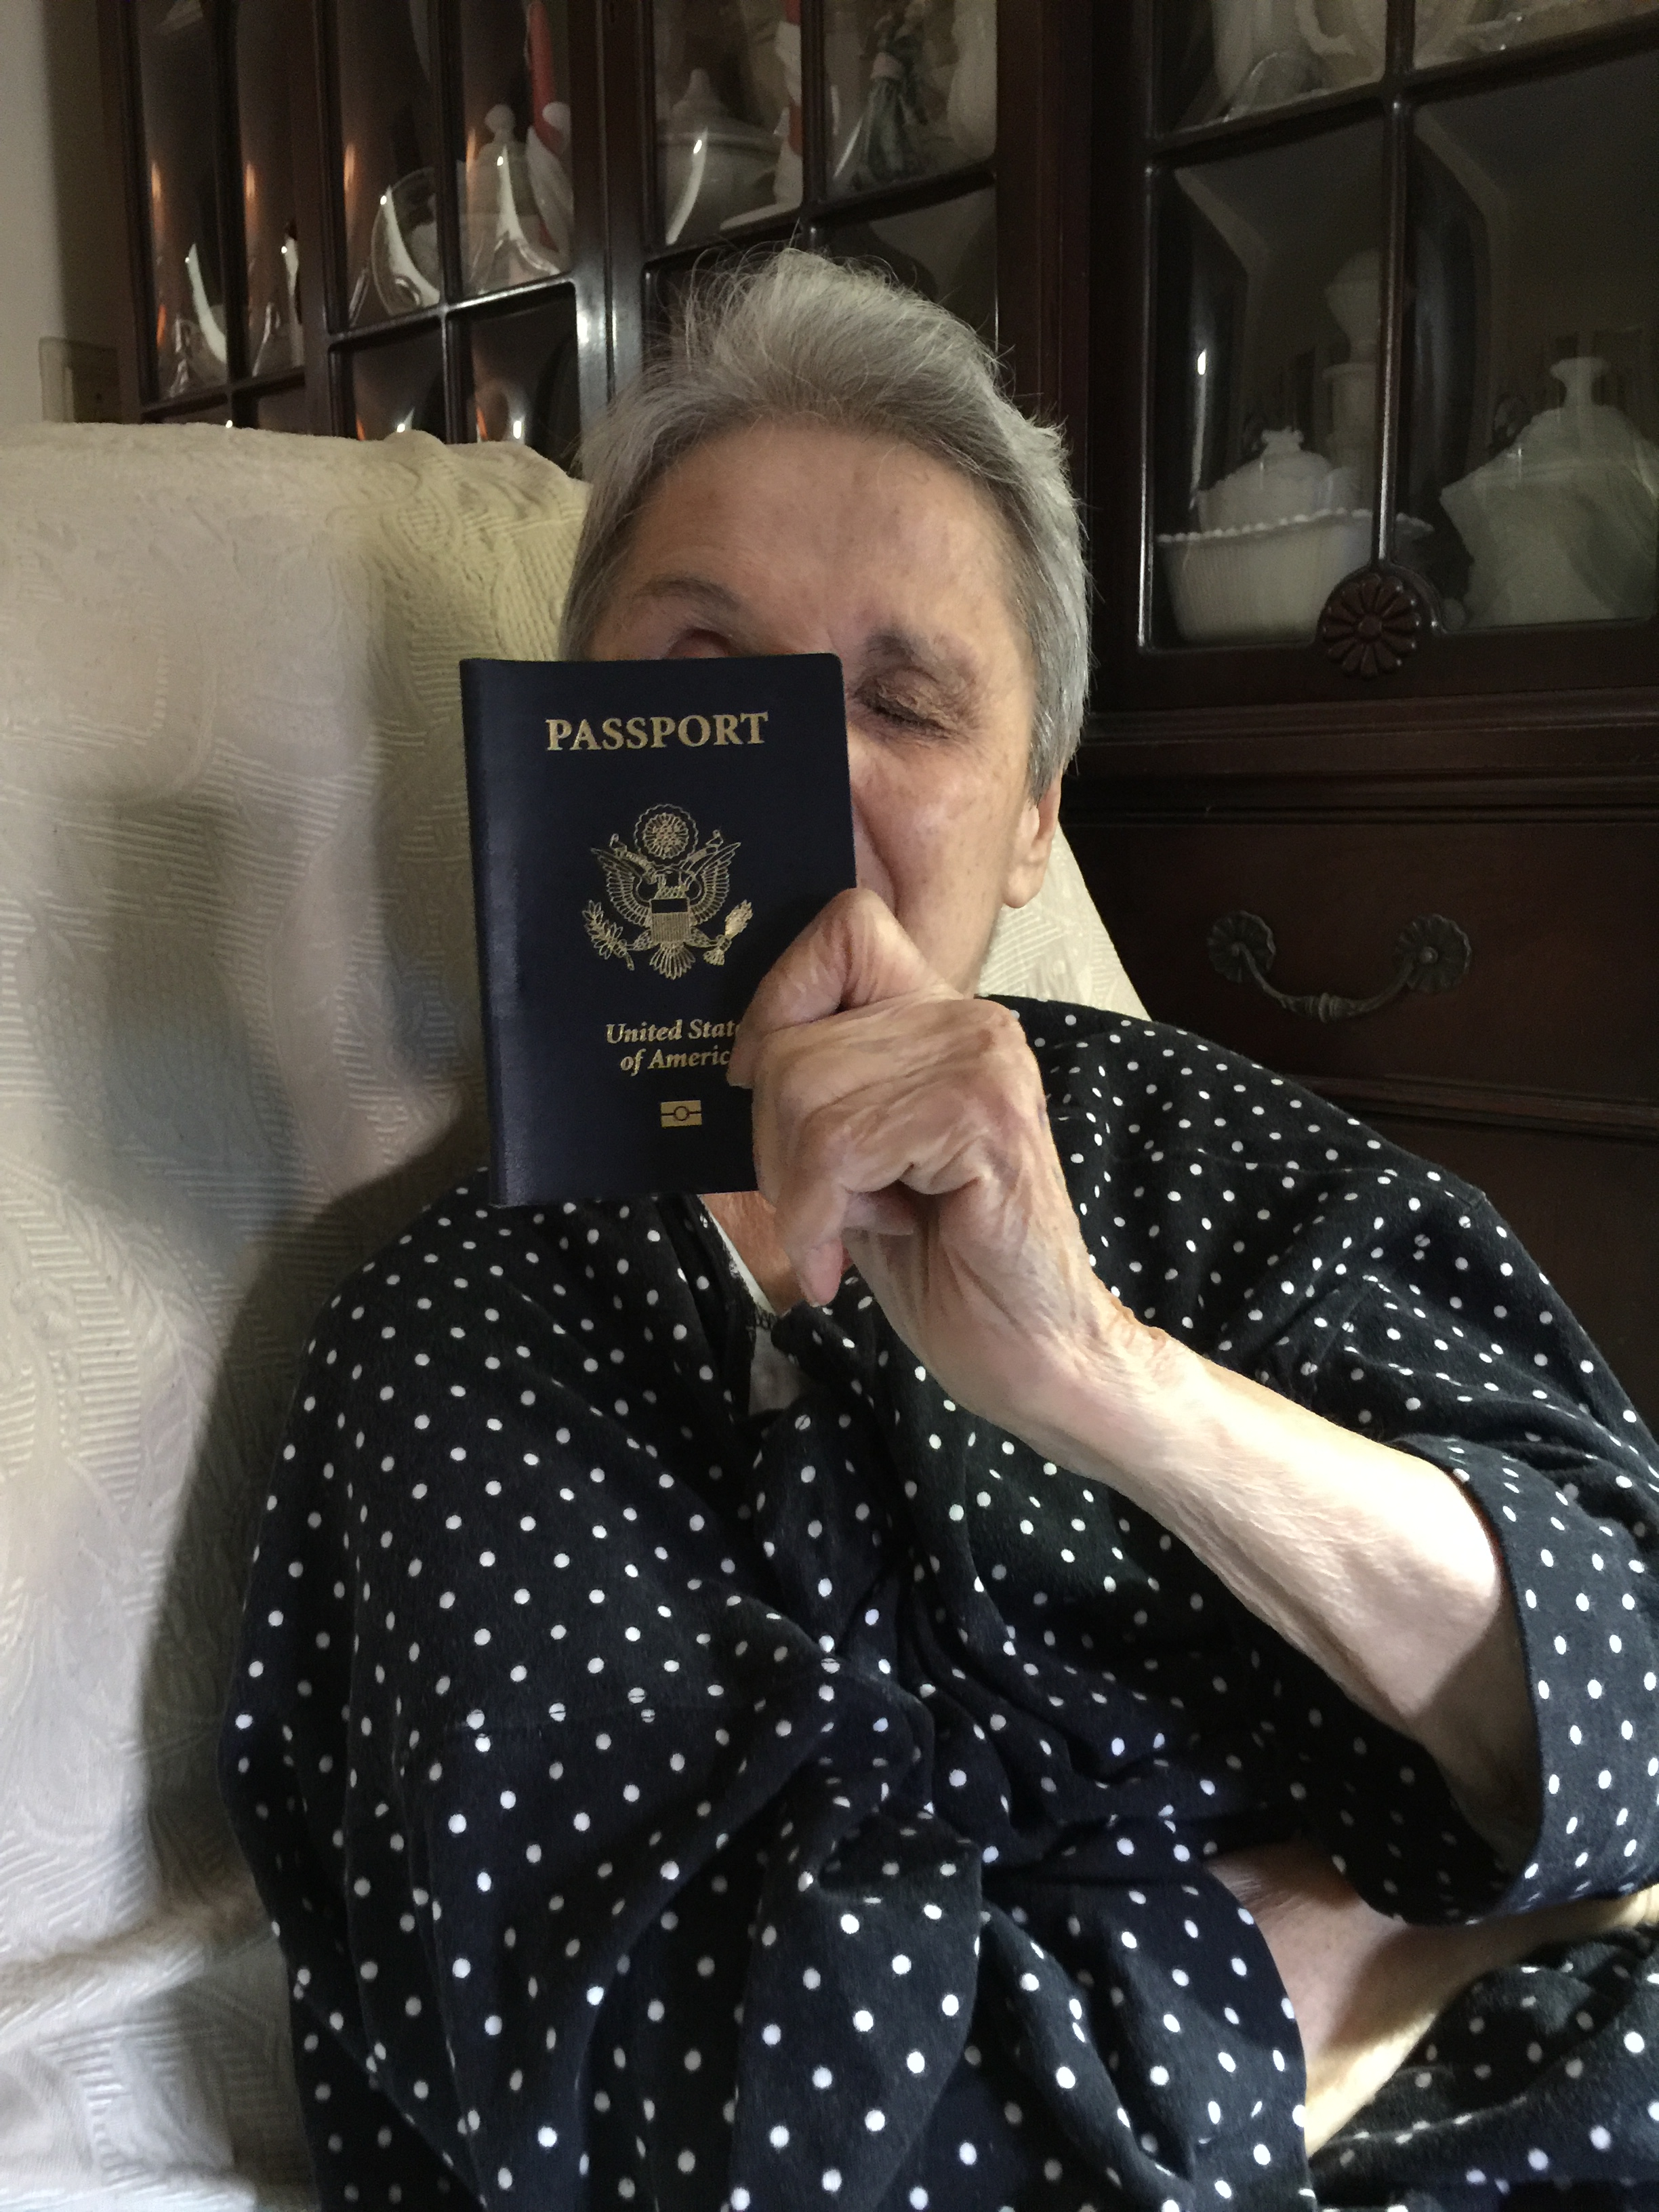 Helen with Passport